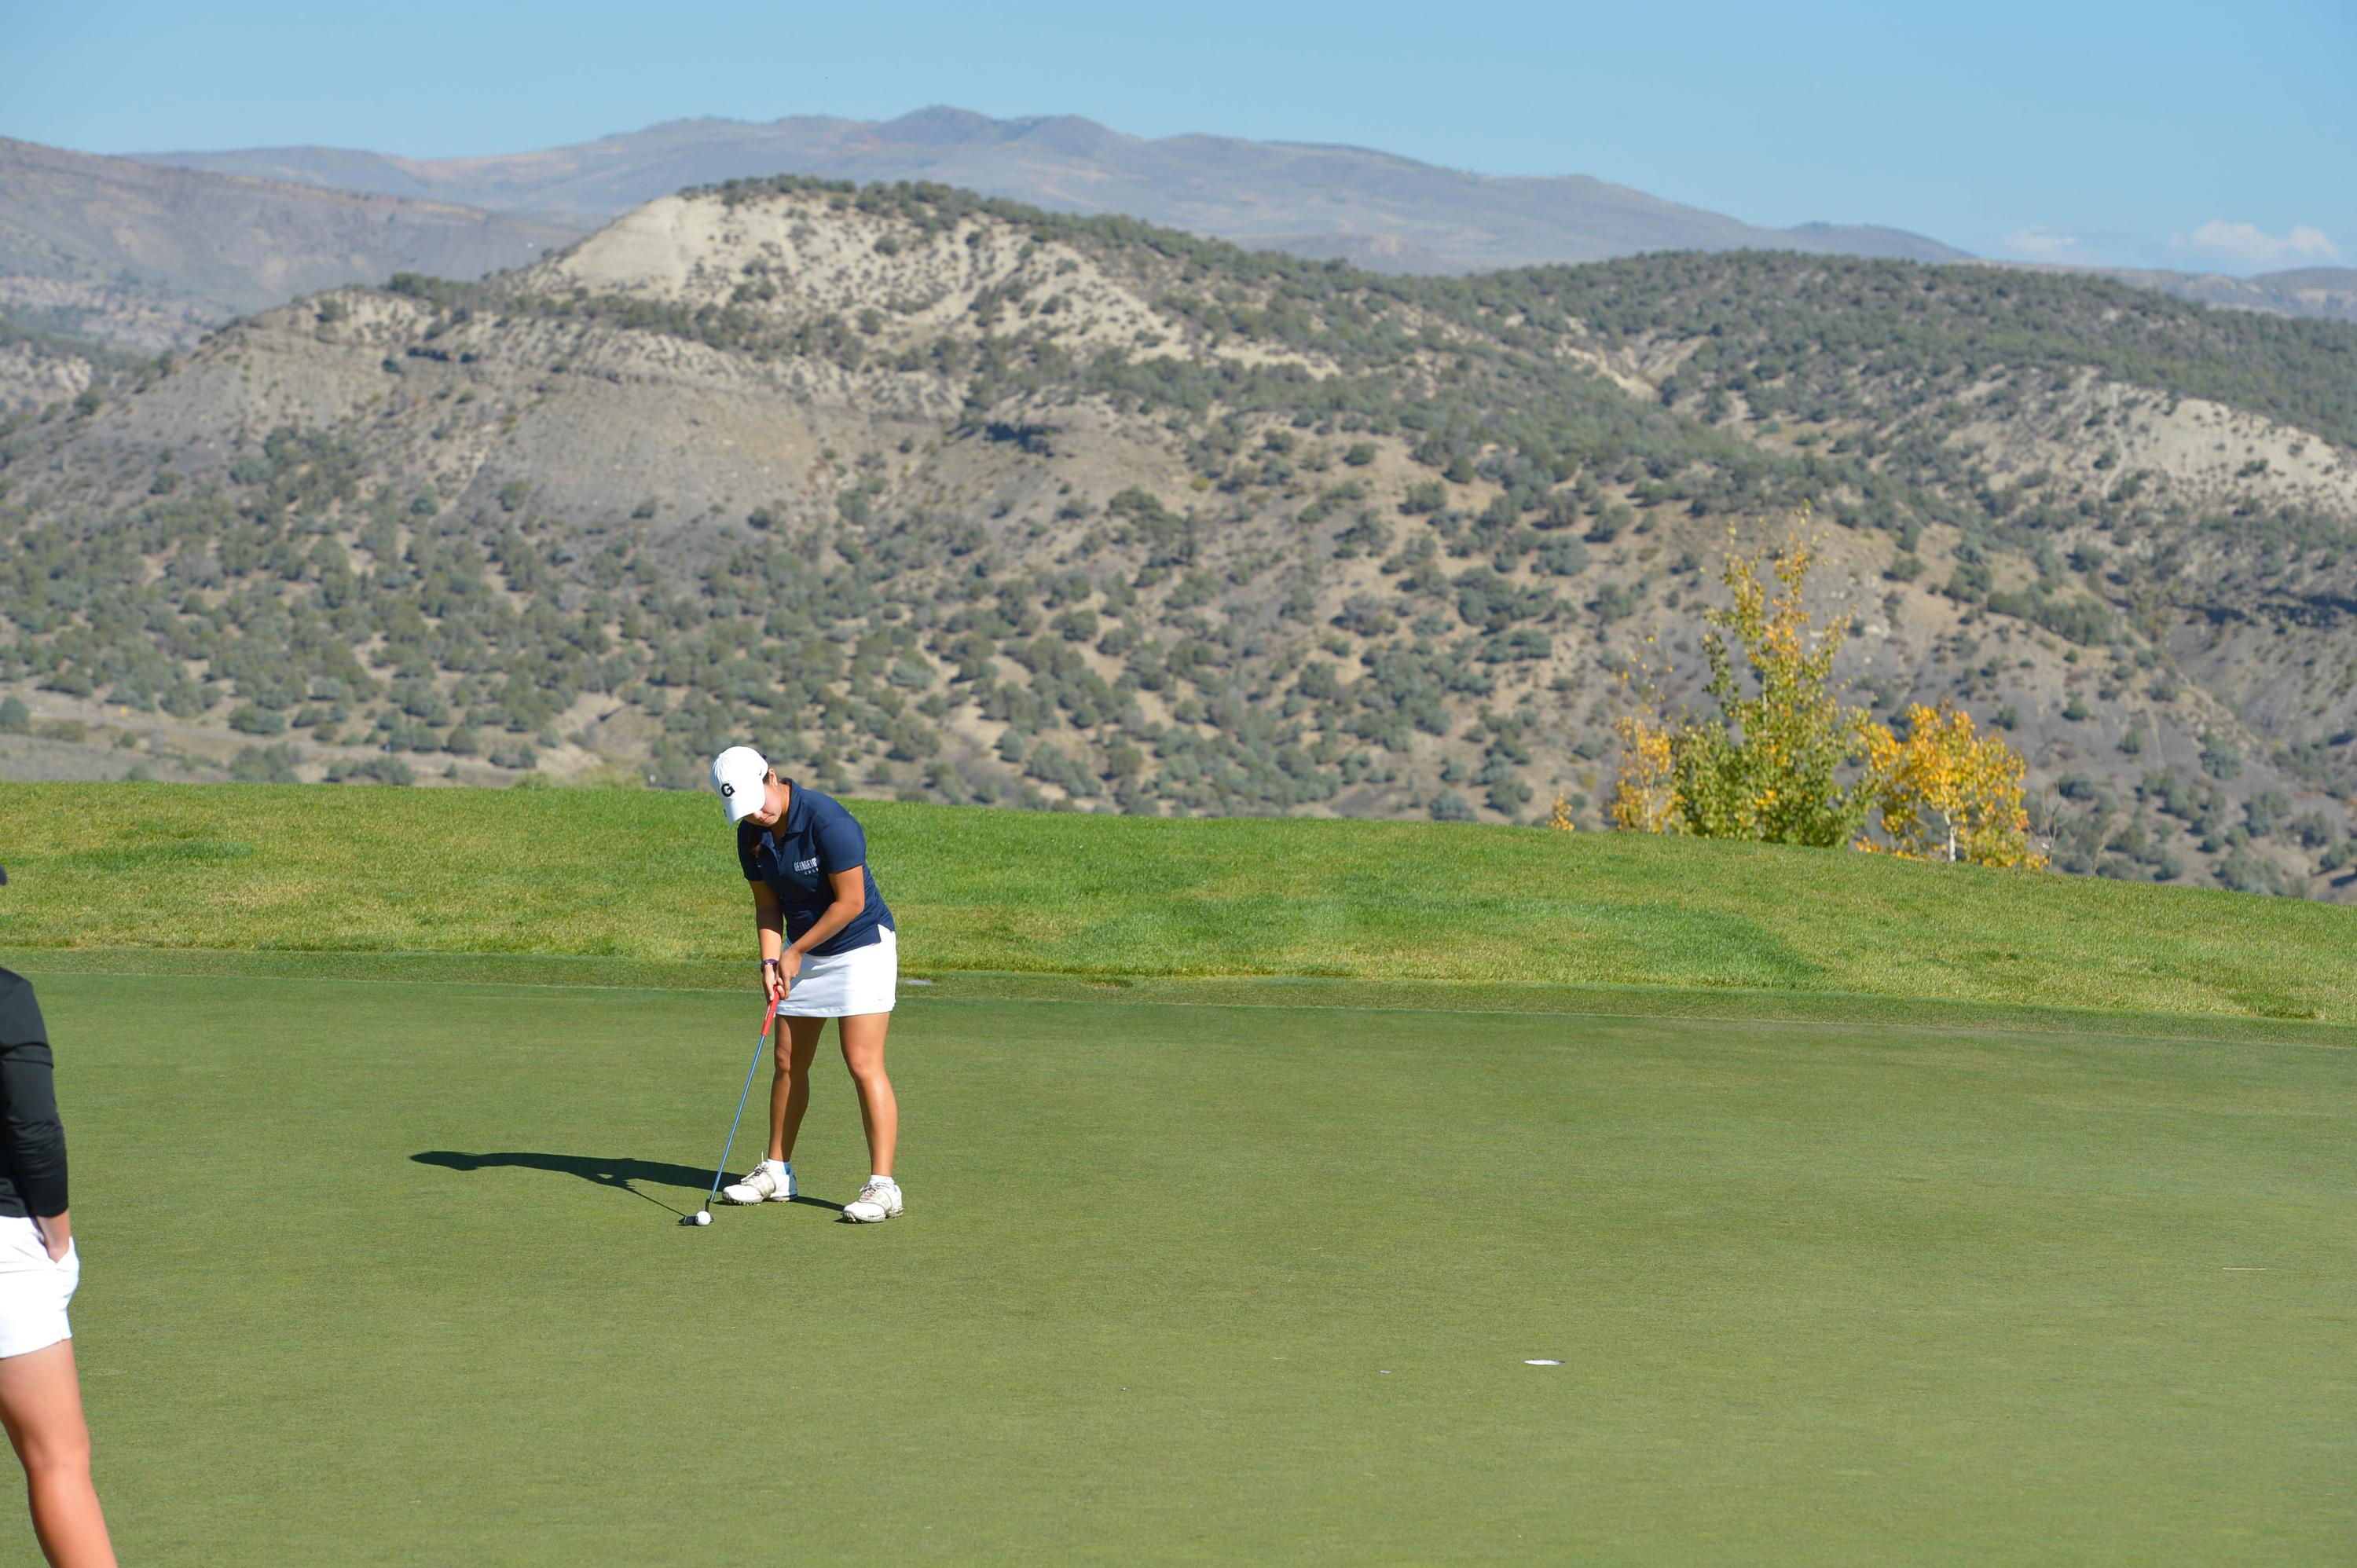 The Georgetown University women's golf team shot a 26-over par 314 and is tied for 13th place after the first round of play at the Kiawah Island Classic, being hosted by the College of Charleston.